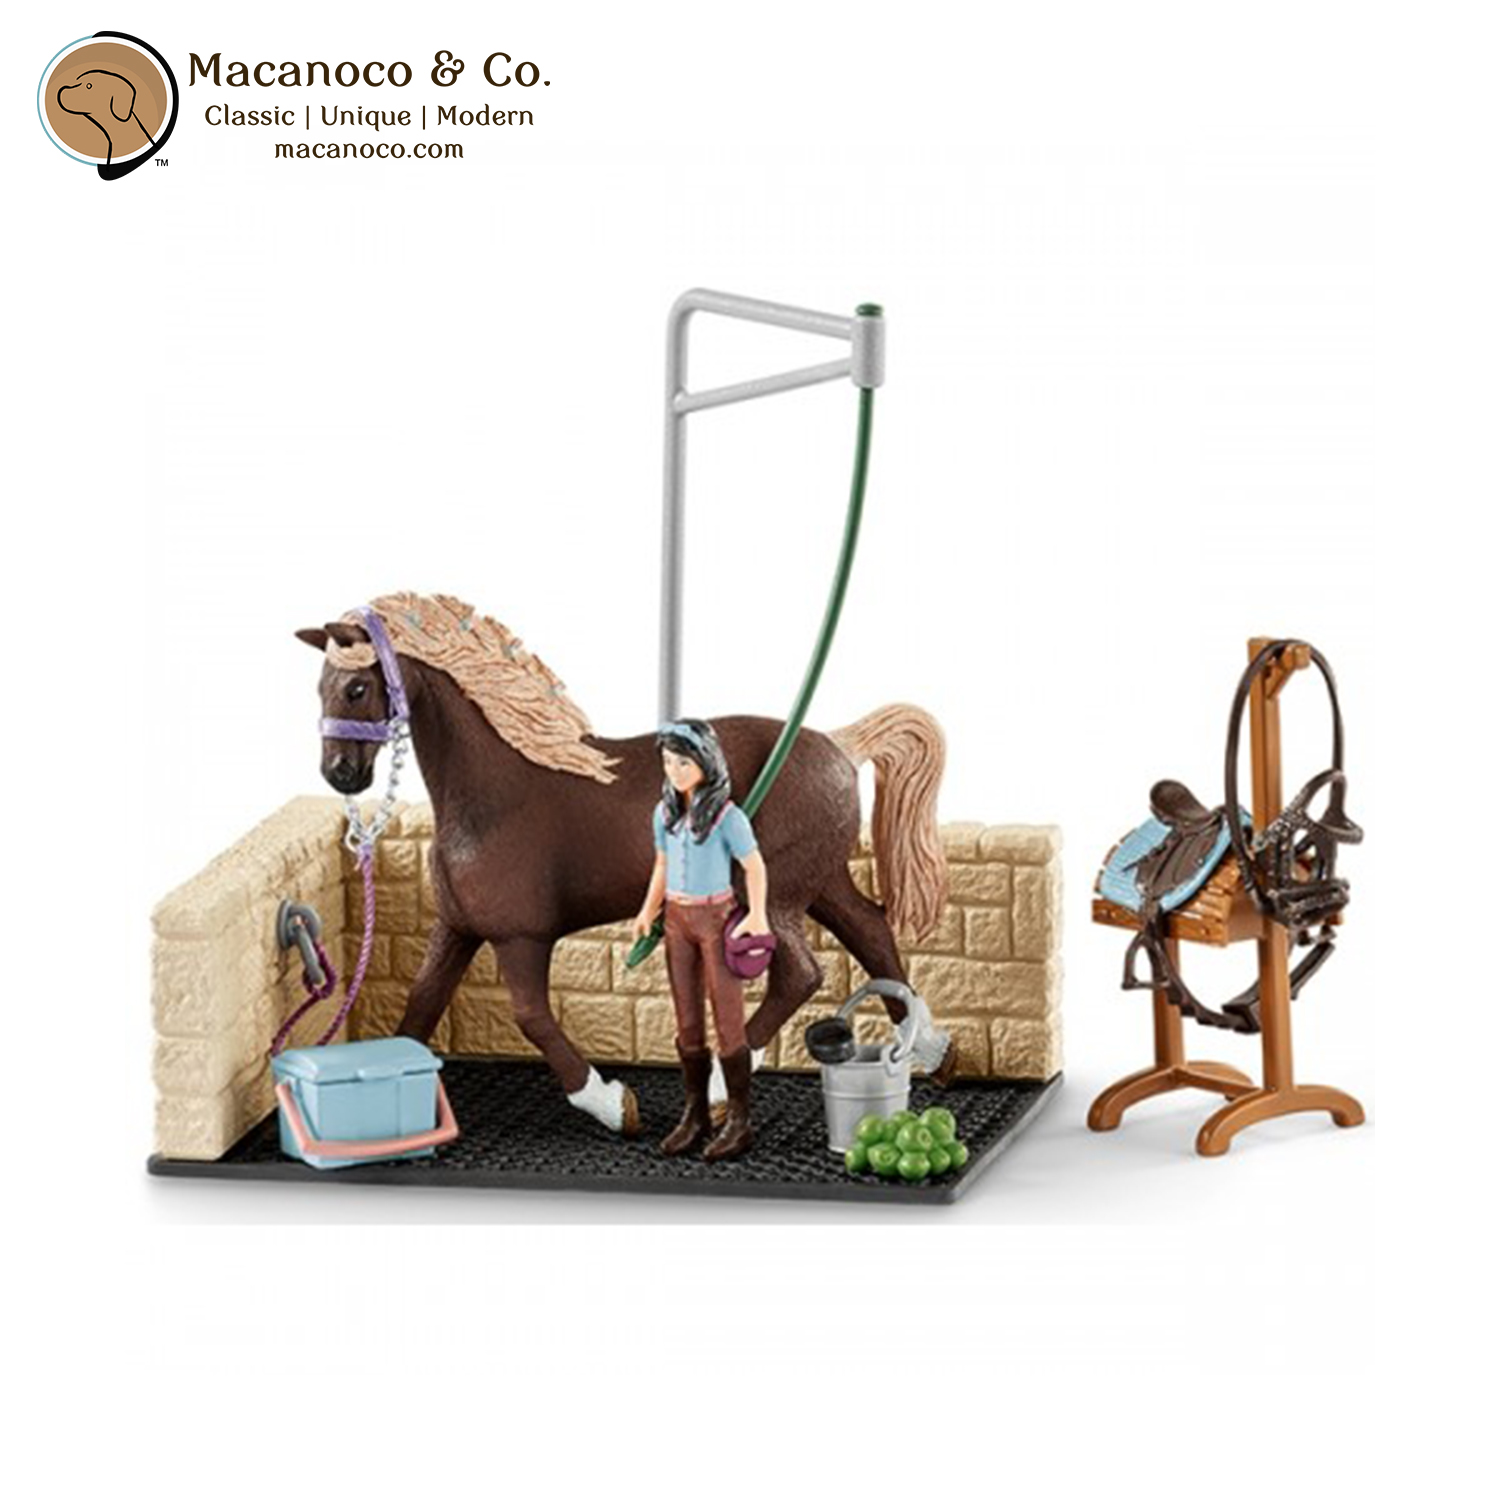 Washing Area with Horse Club Emily and Luna Horse Toy Figurines ... 37dd80ca04